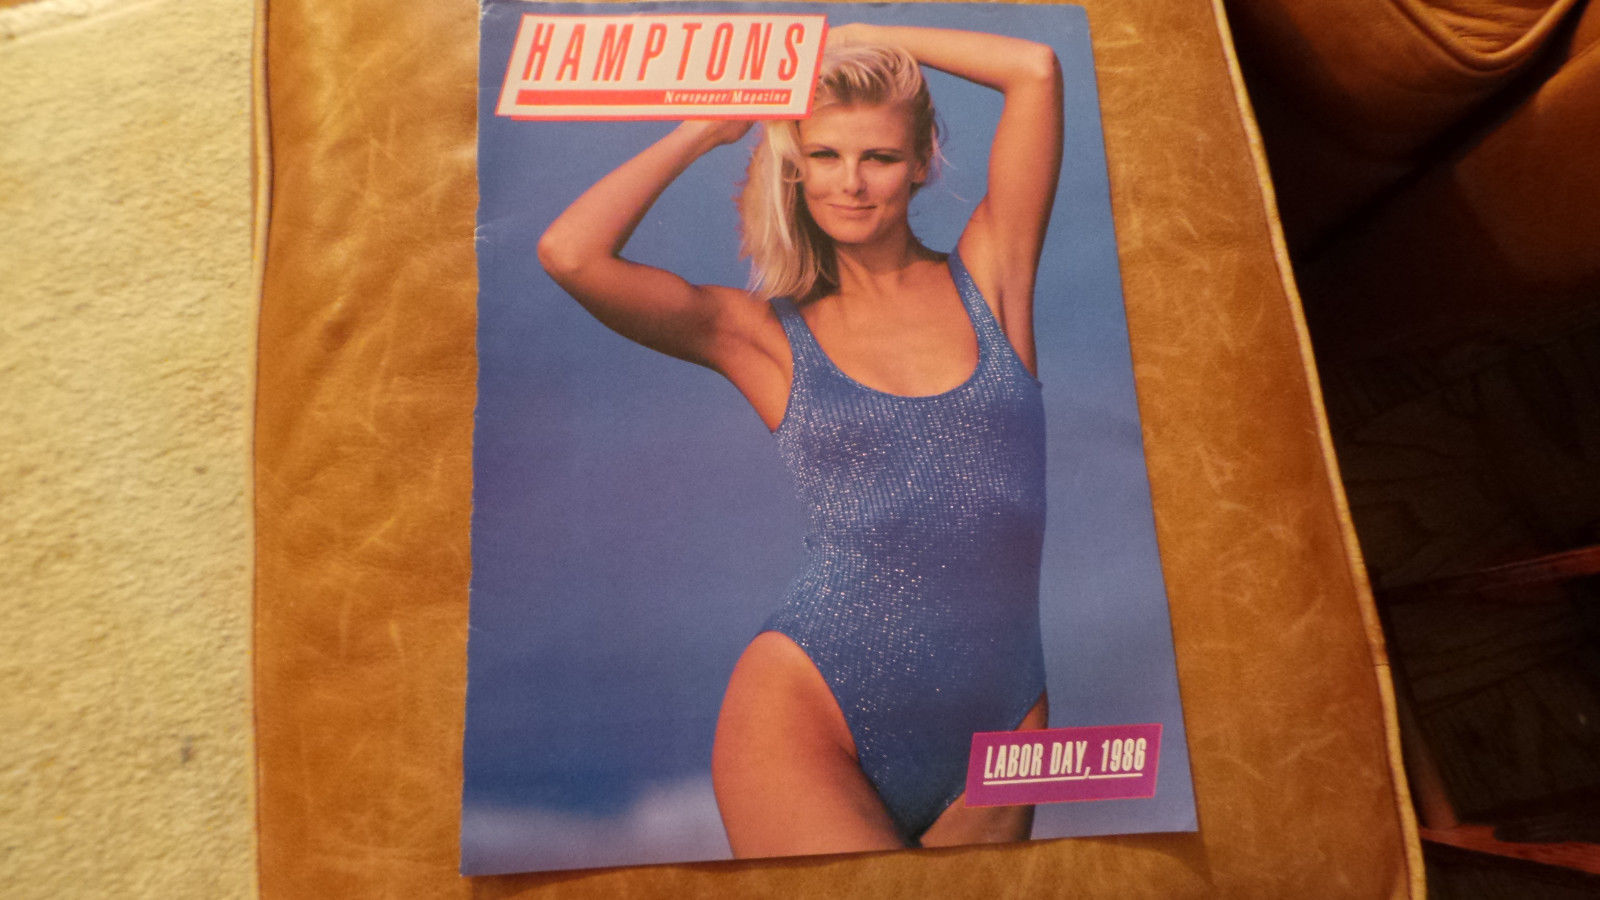 Cheryl Tiegs Hamptons Magazine..Cover Only.. rare from Labor Day, 1988 VG+